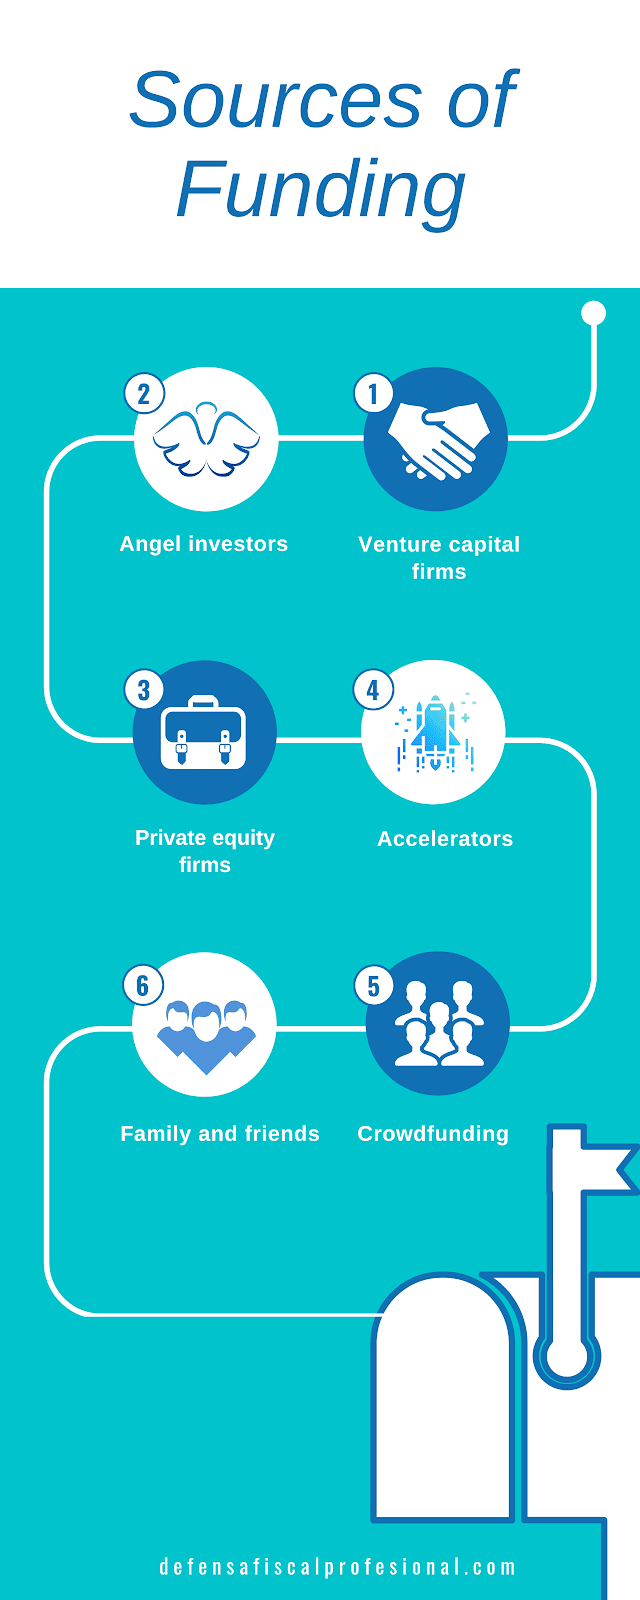 Infographic showing sources of funding